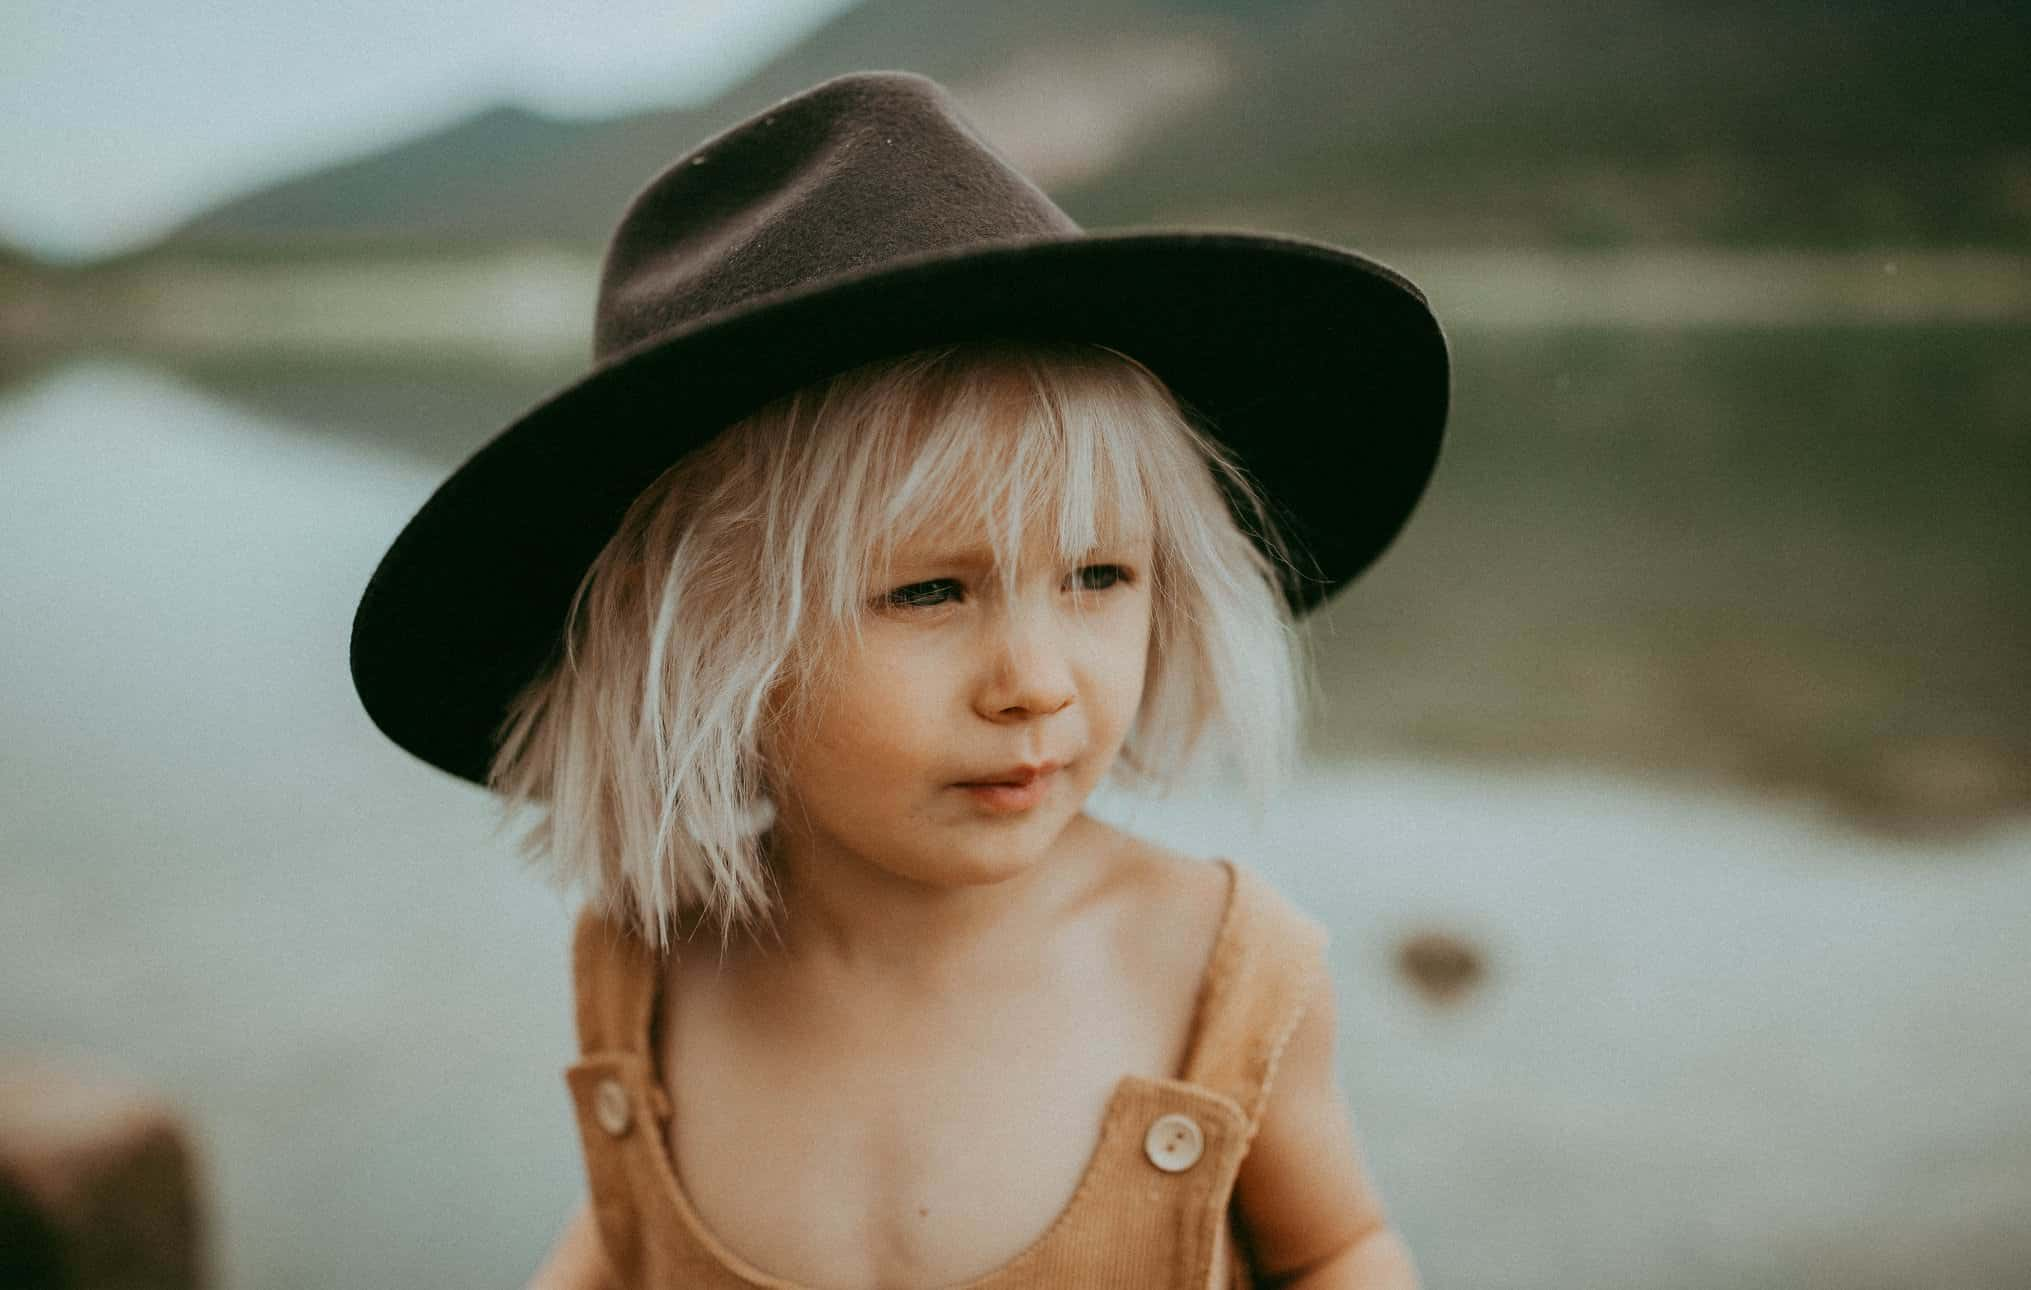 Small kid with a hat that looks into the distance